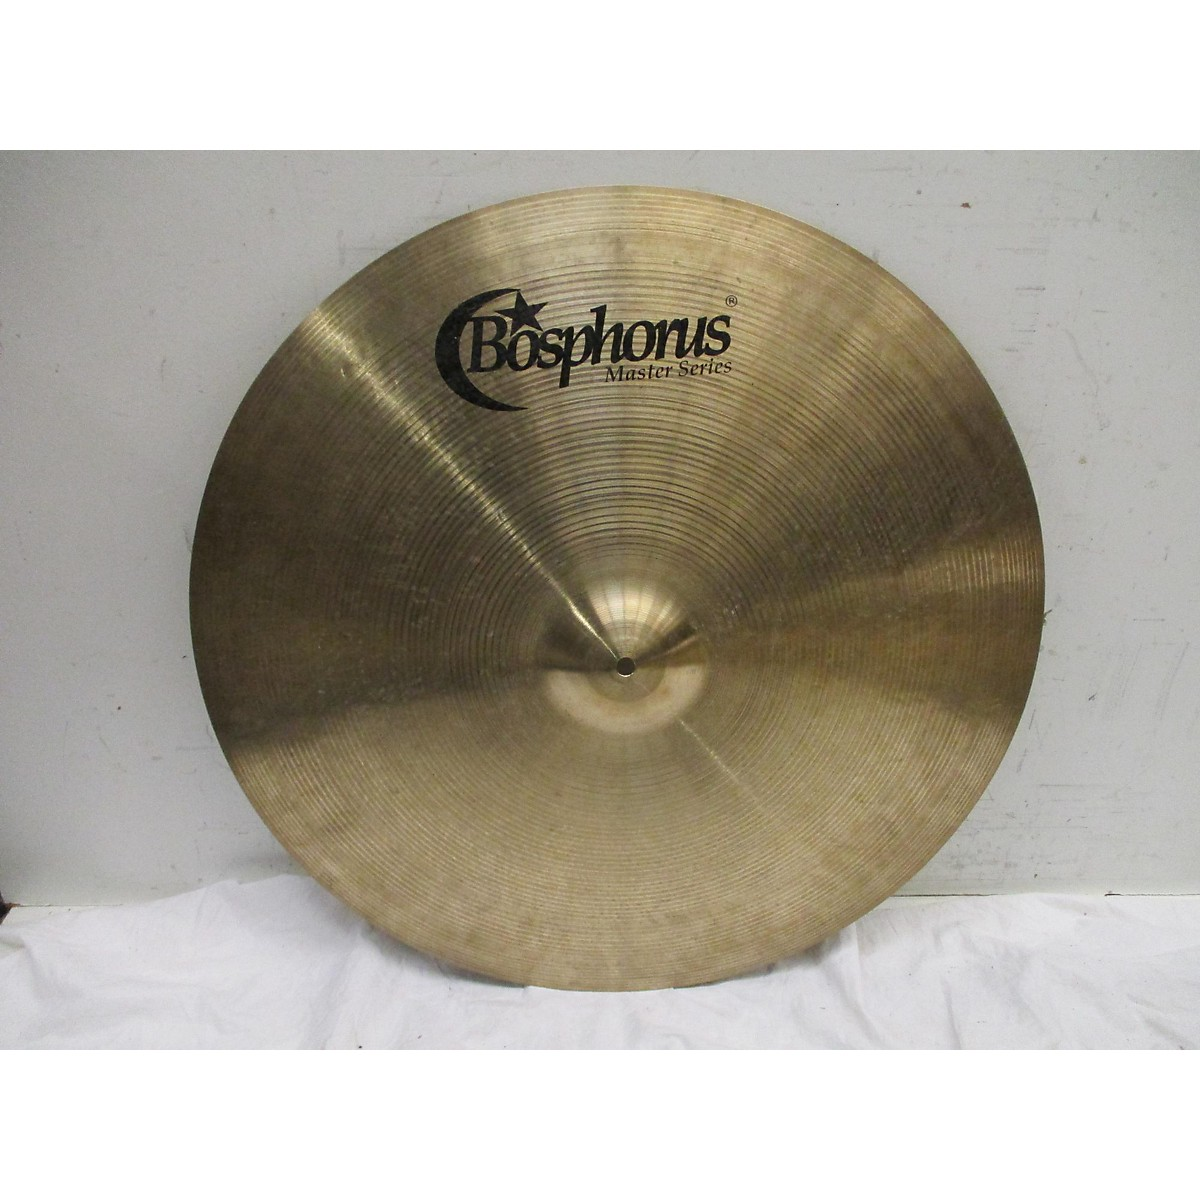 Bosphorus Cymbals 24in M24R Master Ride Cymbal